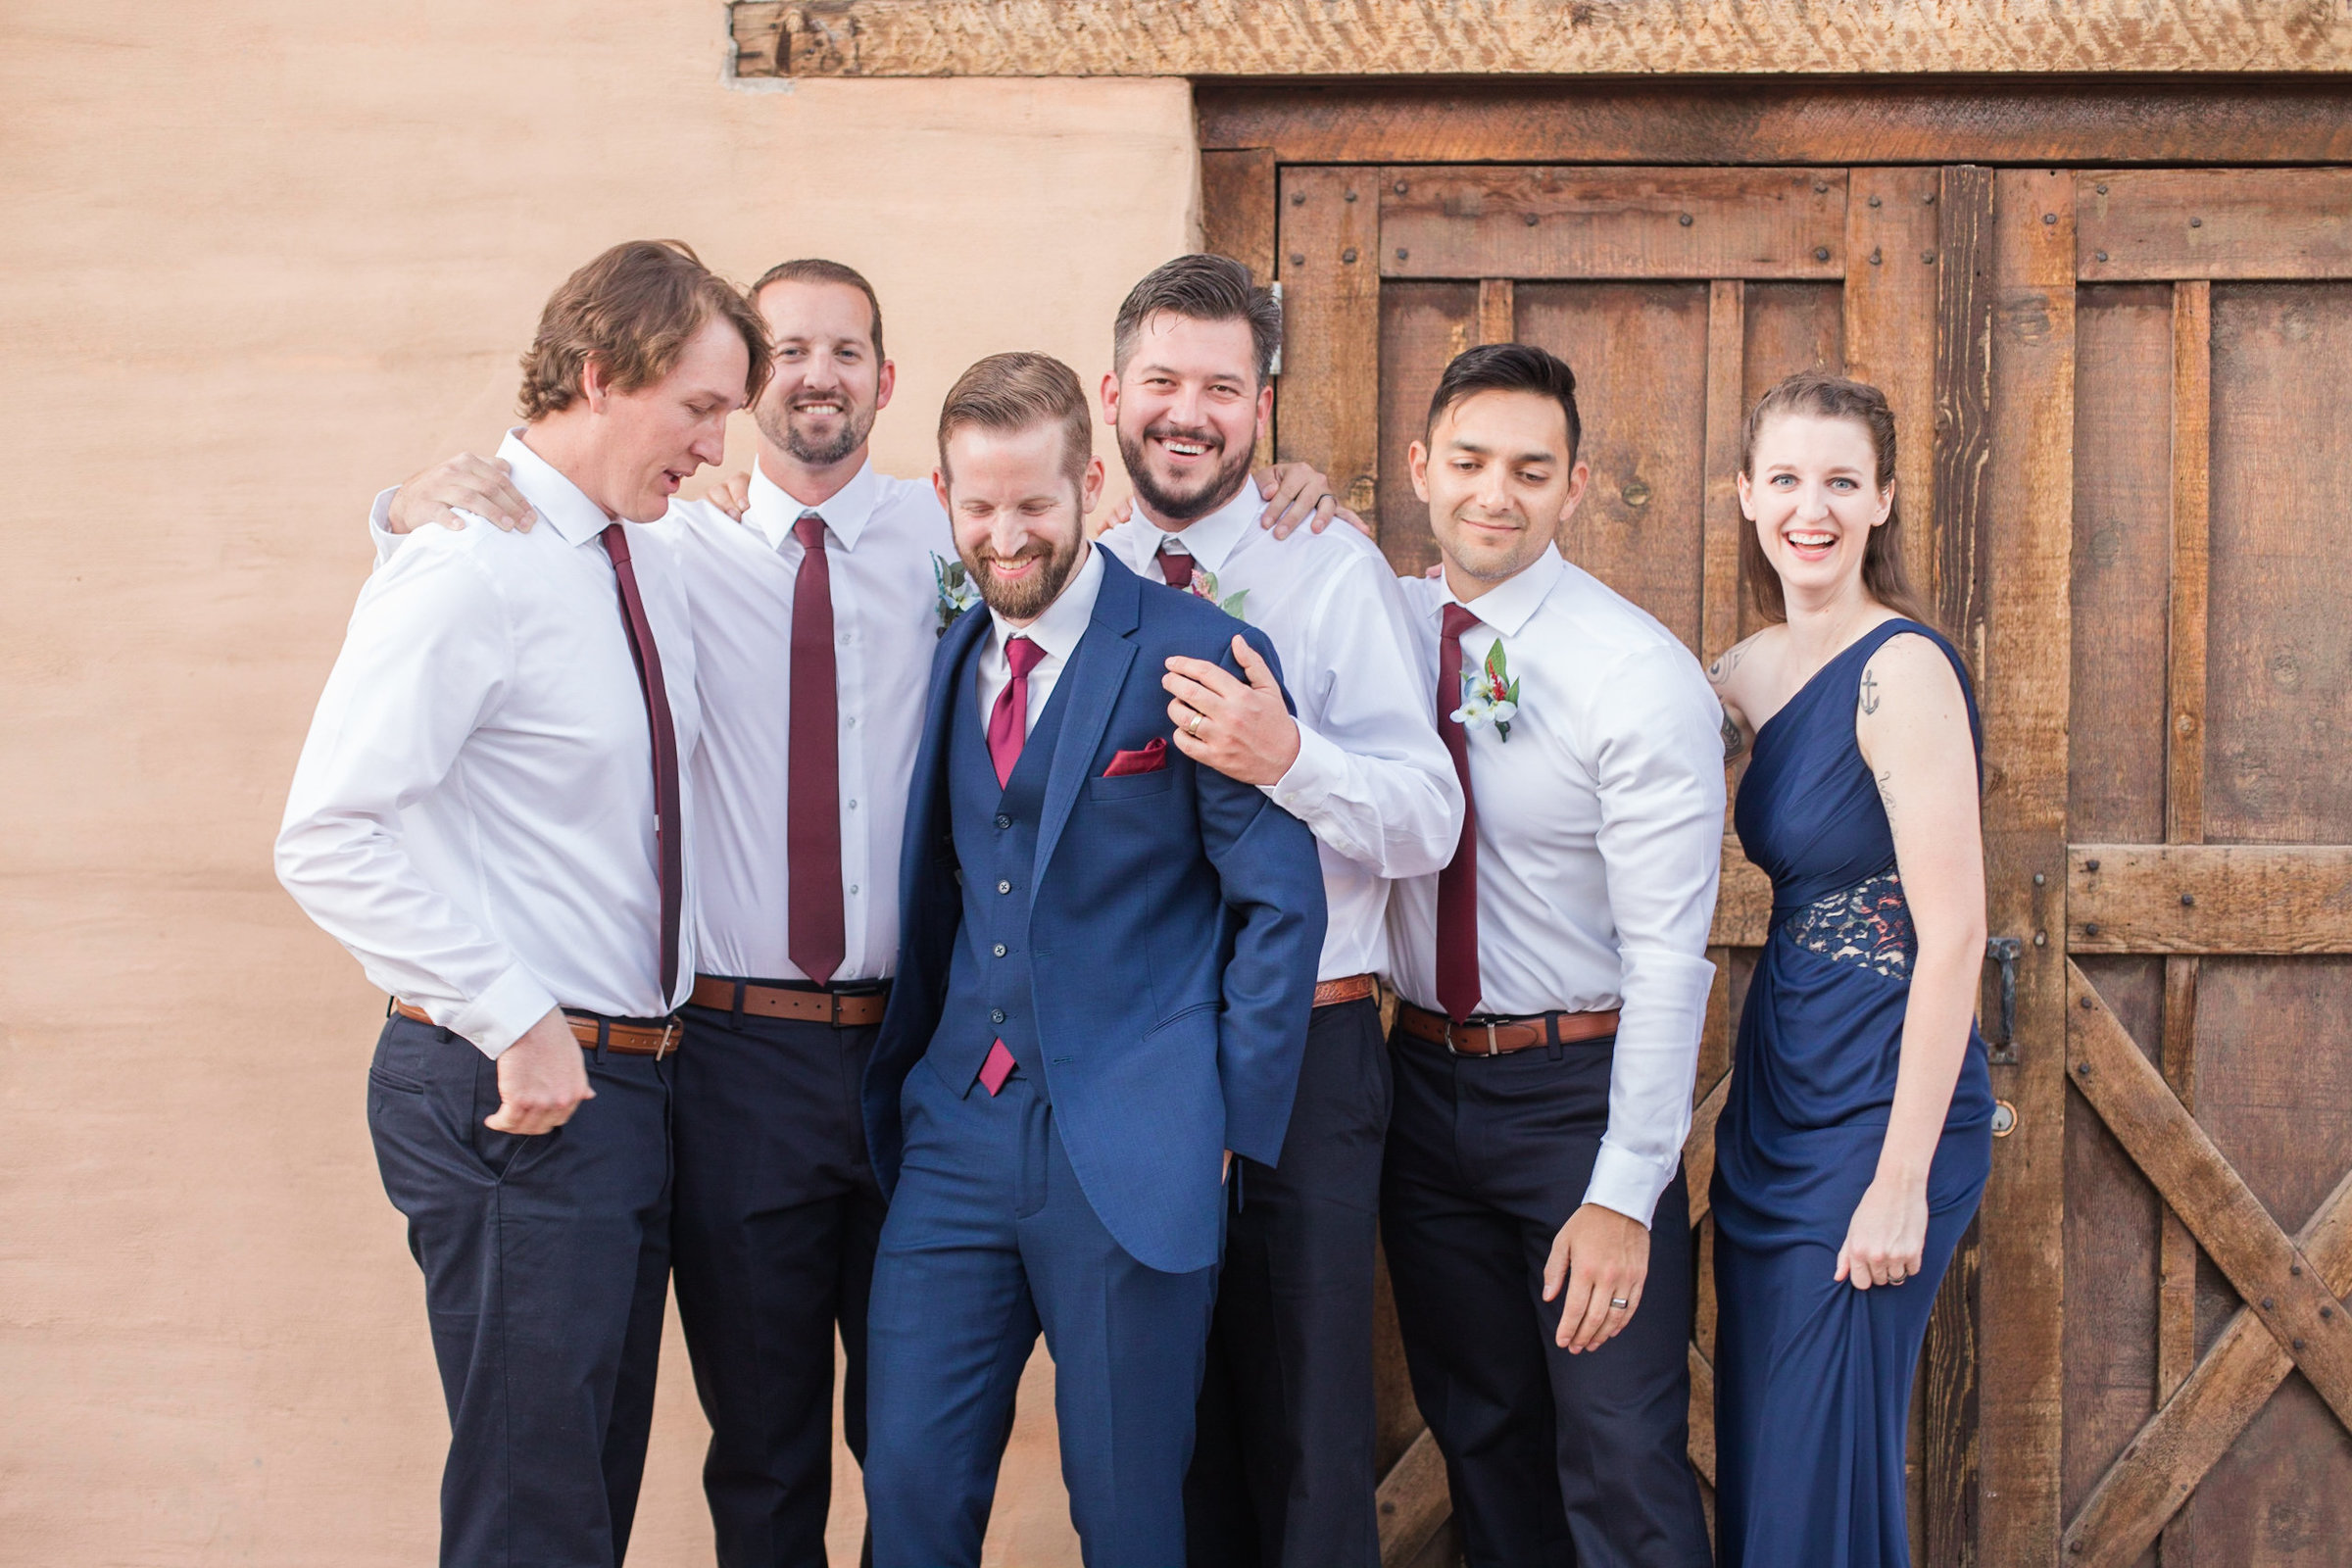 Photograph of groom and his groomsmen at their wedding in Scottsdale